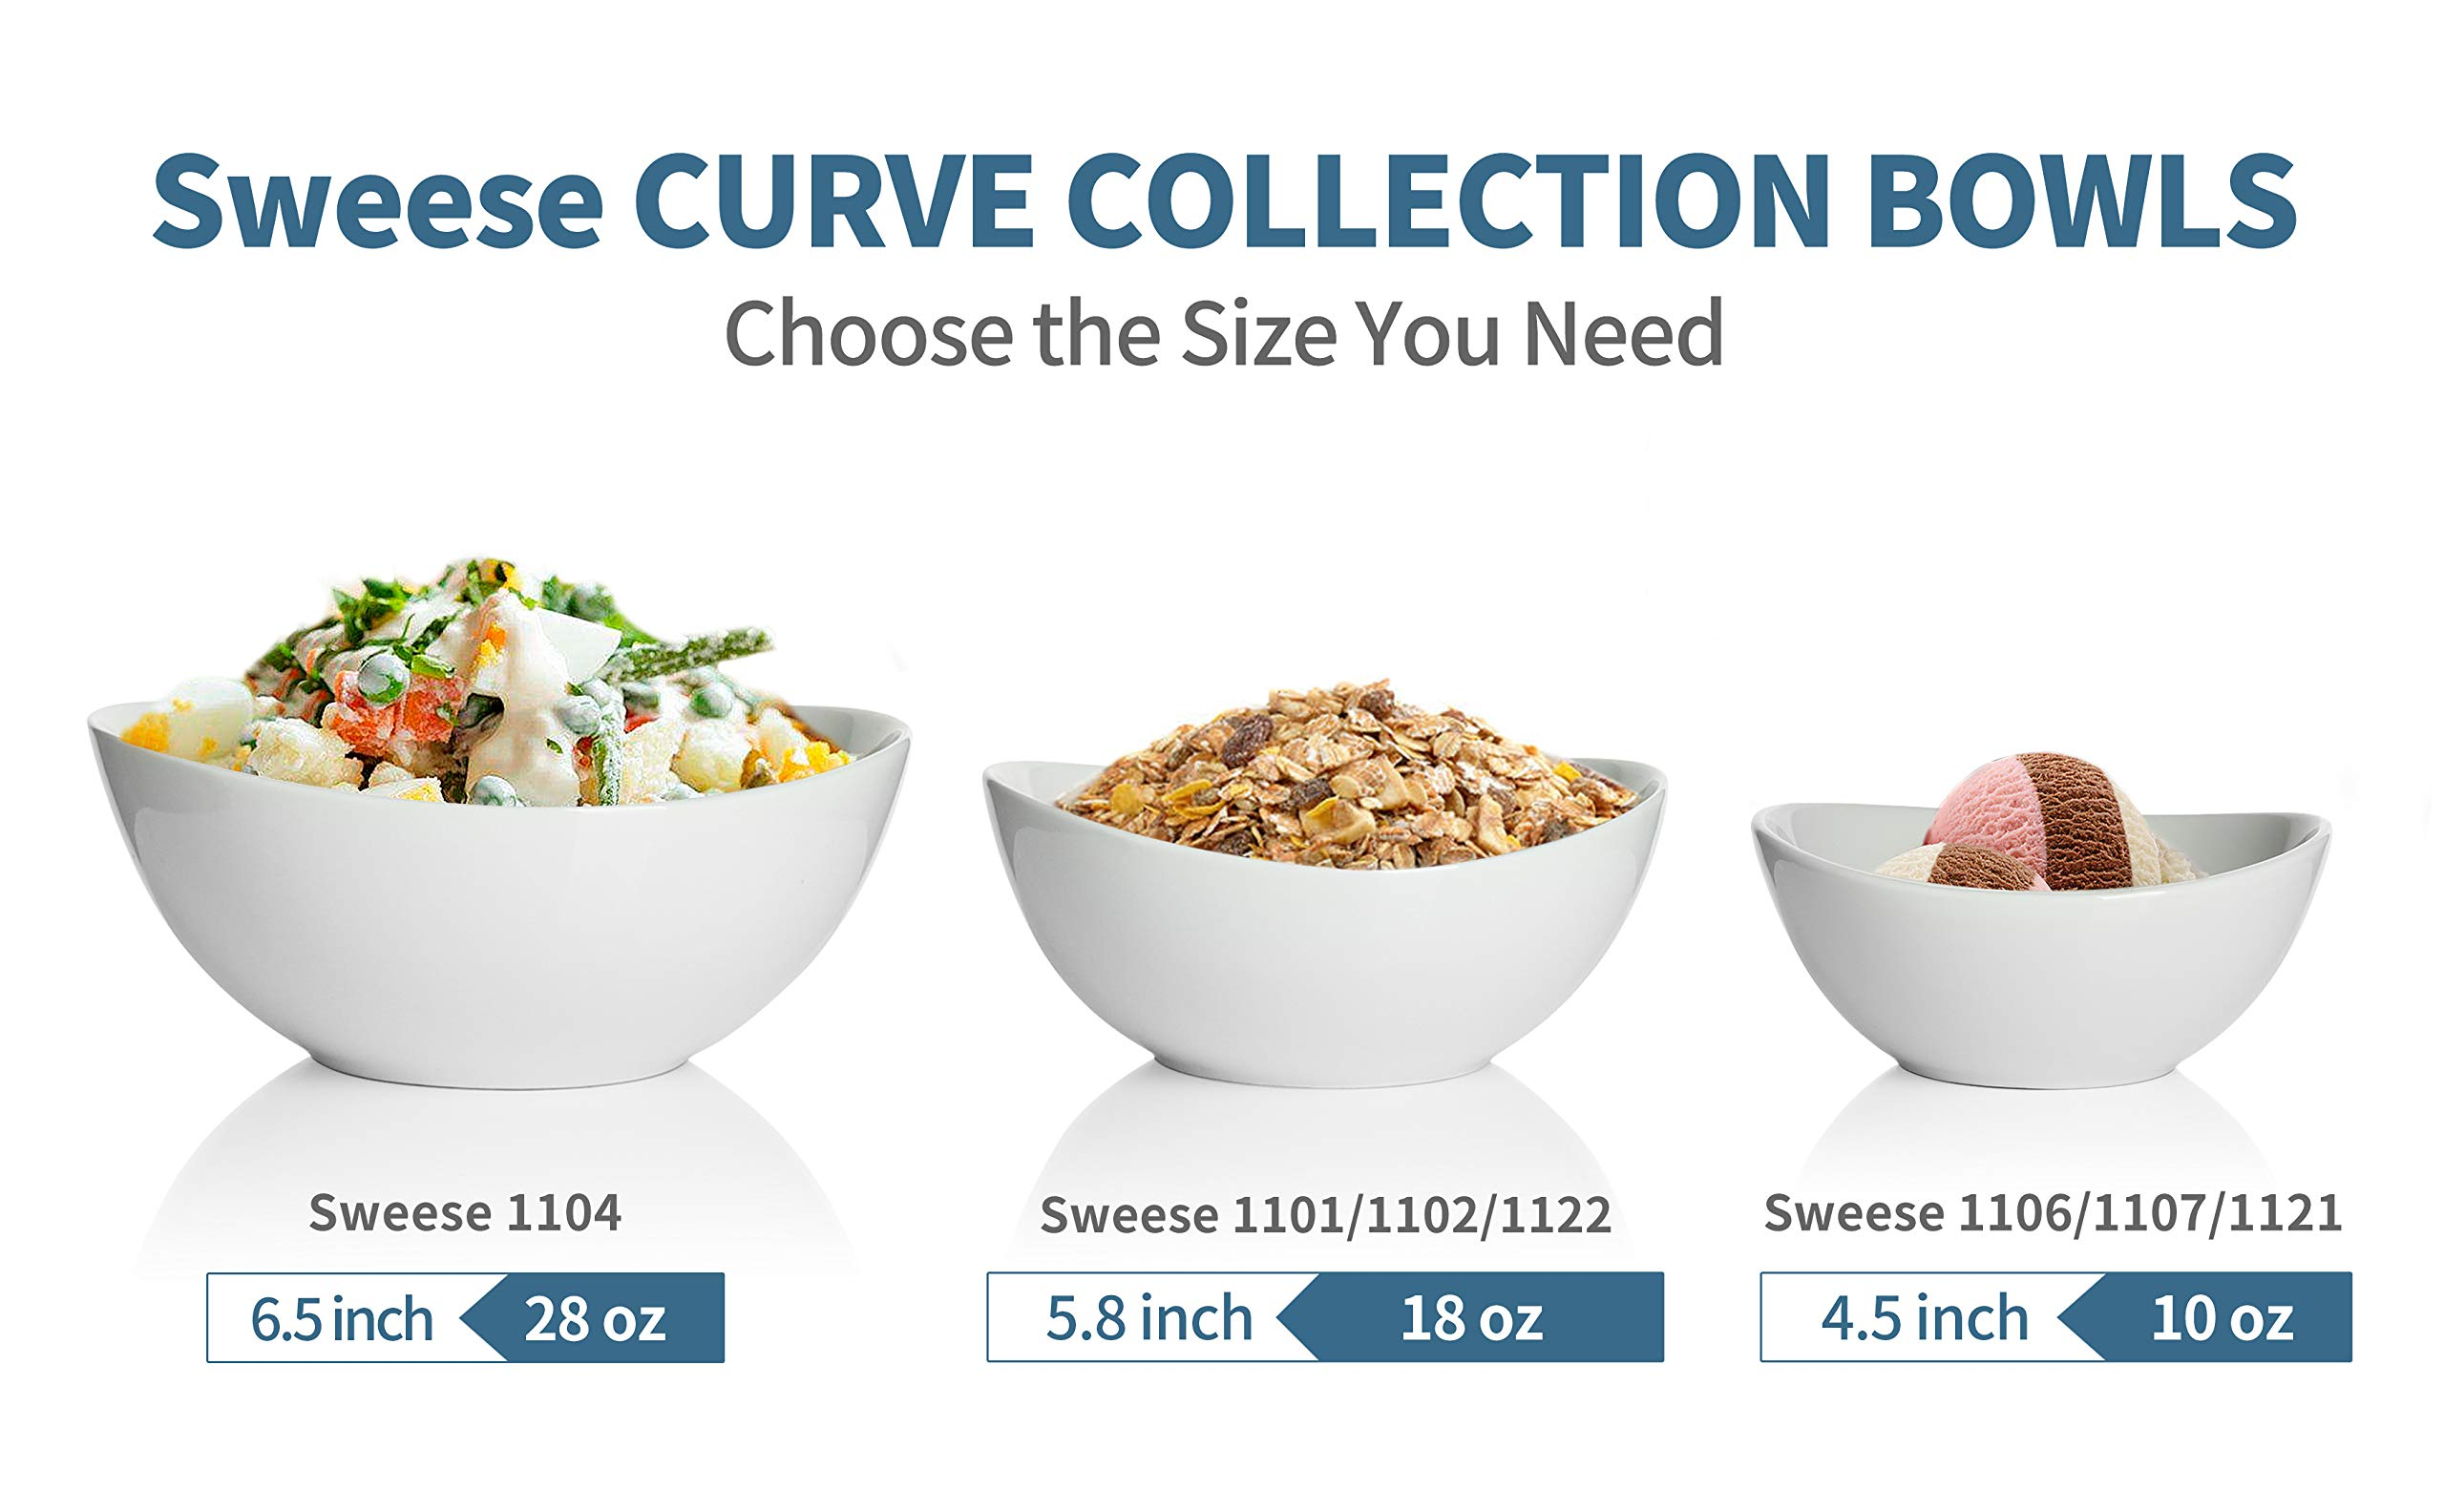 Sweese 1106 Porcelain Bowls - 10 Ounce for Ice Cream Dessert, Small Side Dishes - Set of 6, White by Sweese (Image #2)